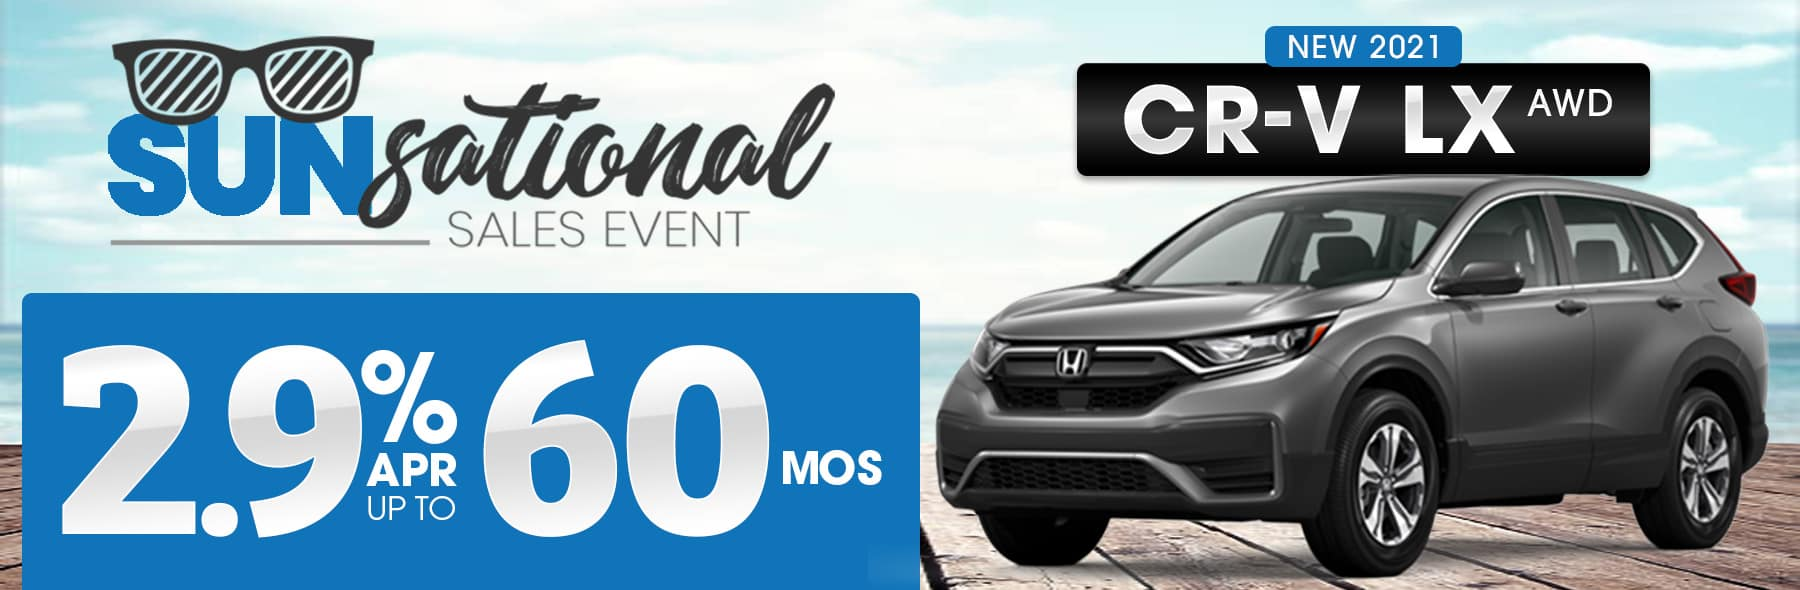 IGH-July21-HP-Offers-vCRV